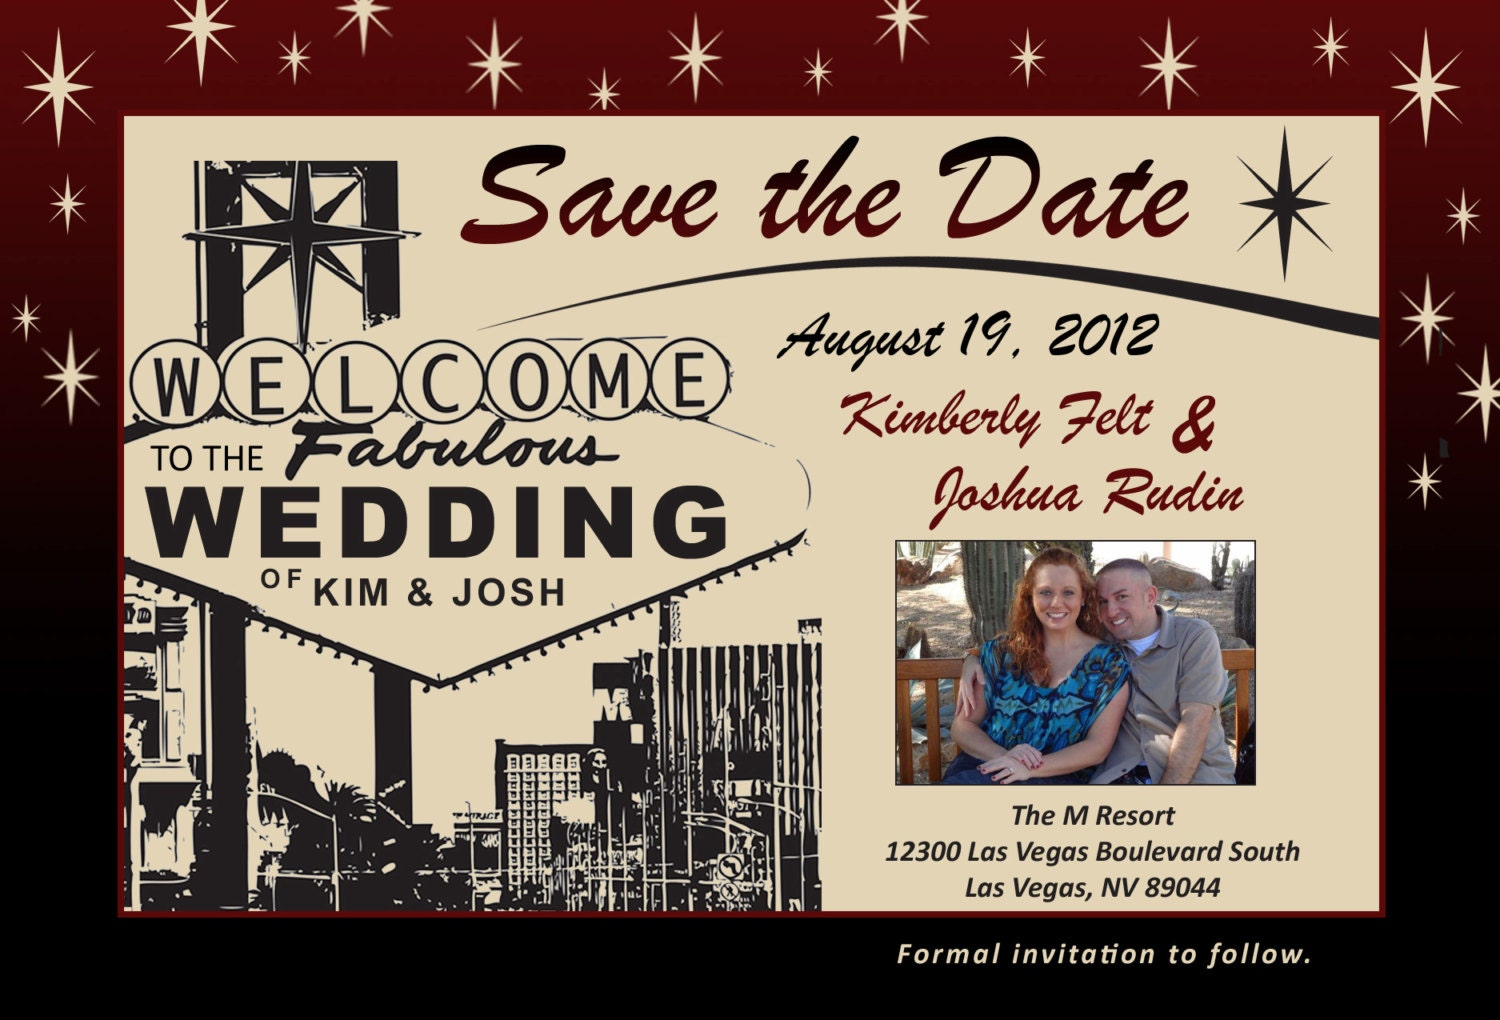 Las Vegas Themed Wedding Save The Date With Photo